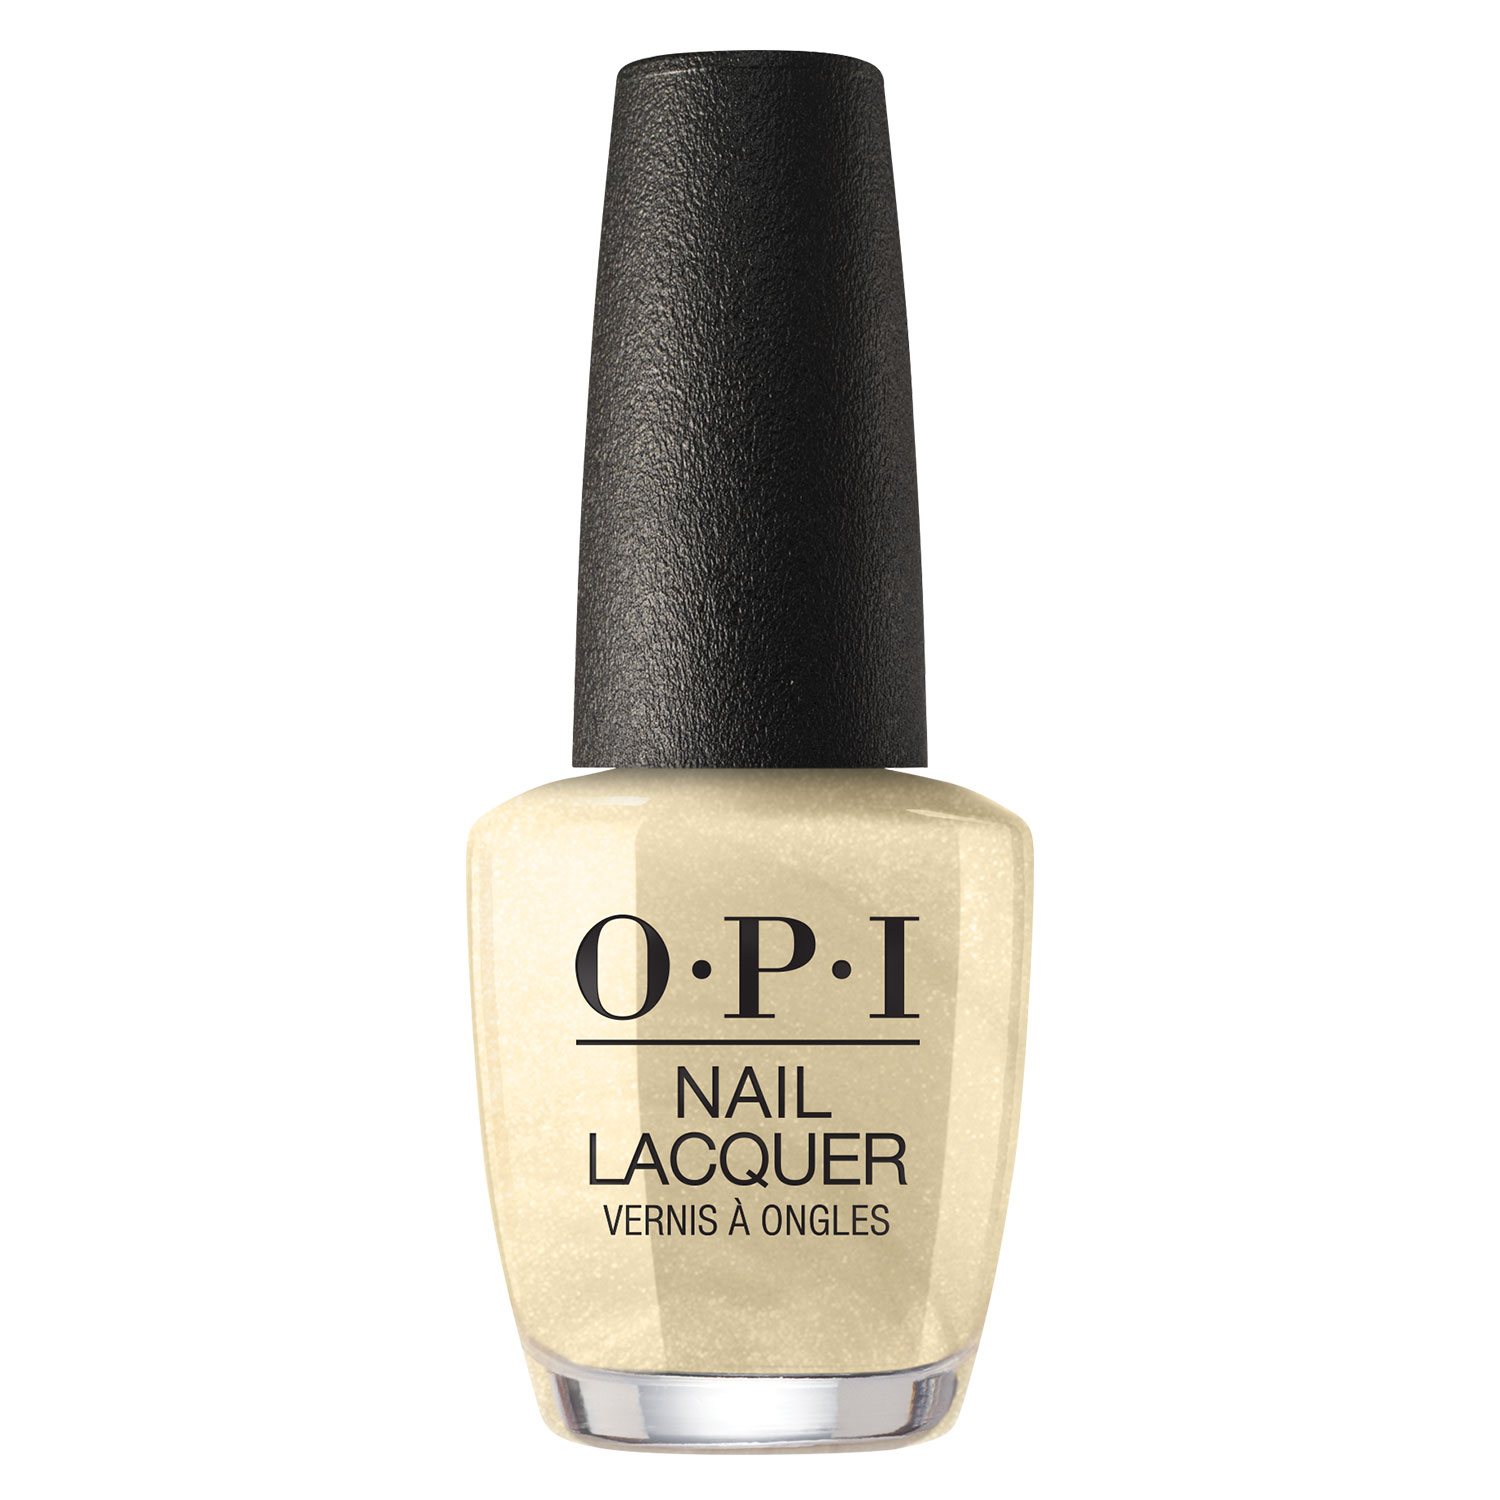 Love OPI, XOXO - Gift of Gold Never Gets Old